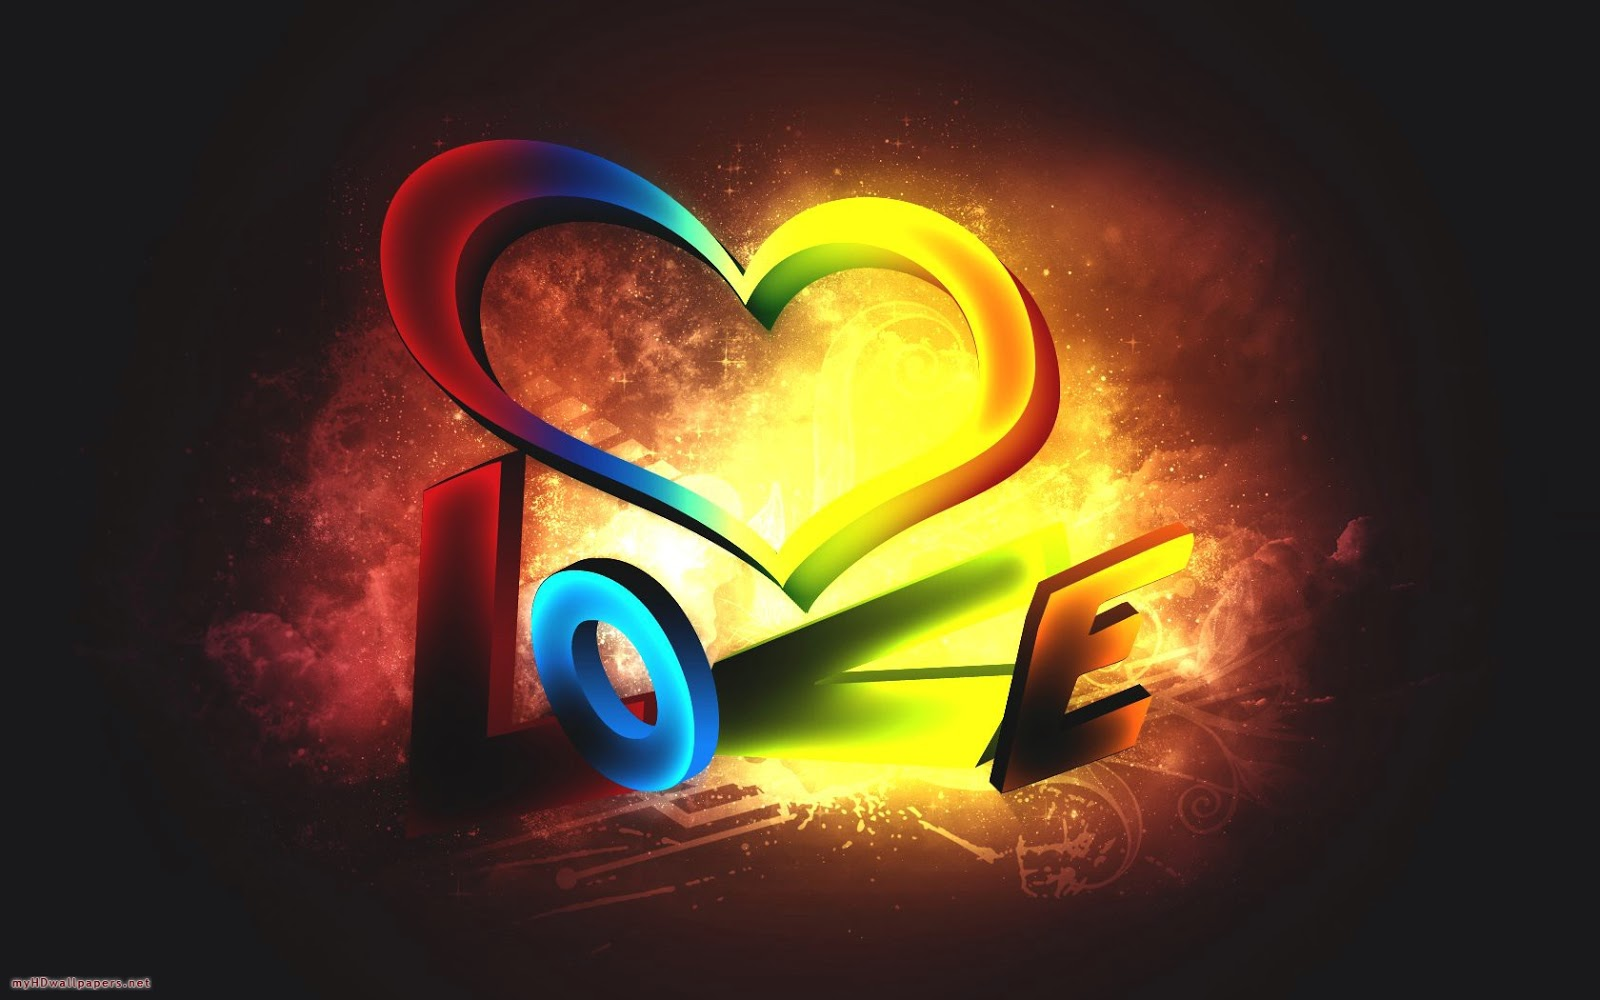 Unique Love Wallpaper Hd : Unique And Wonderful Wallpapers Of Love Free Download For Android Free Download Wallpaper ...